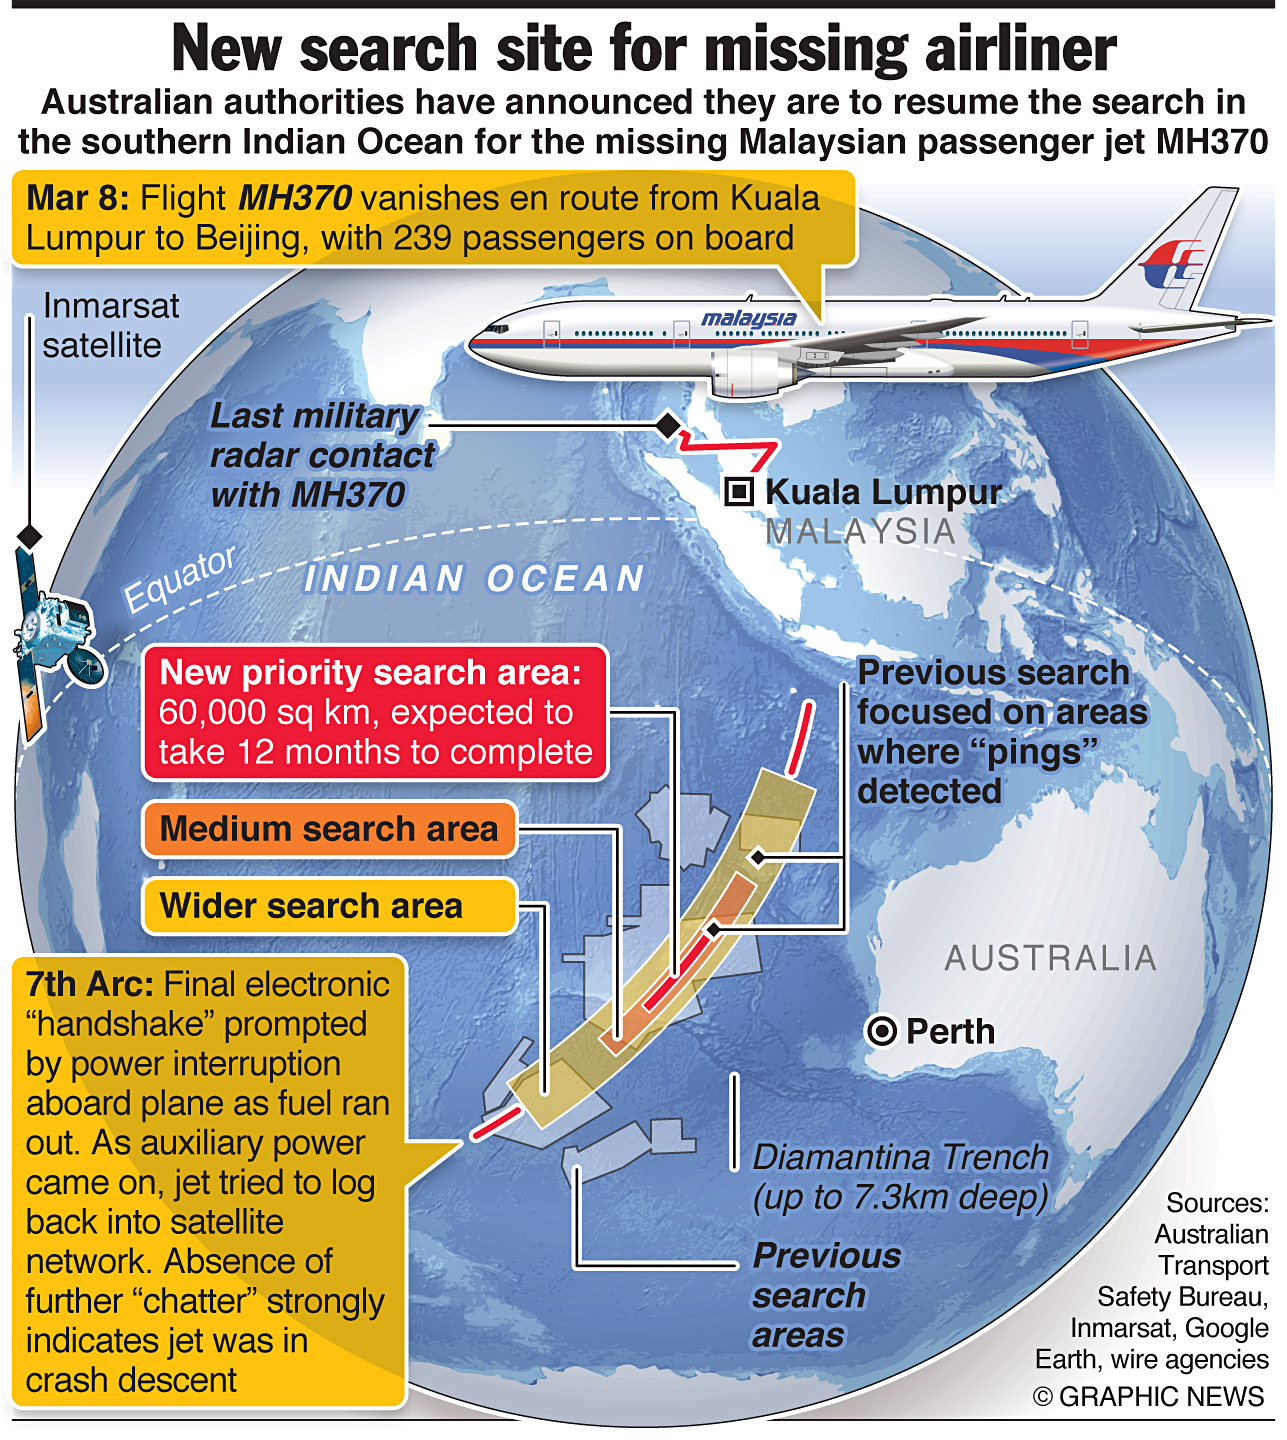 Search areas for MH370. Image credit to Engineering & Technology Magazine.